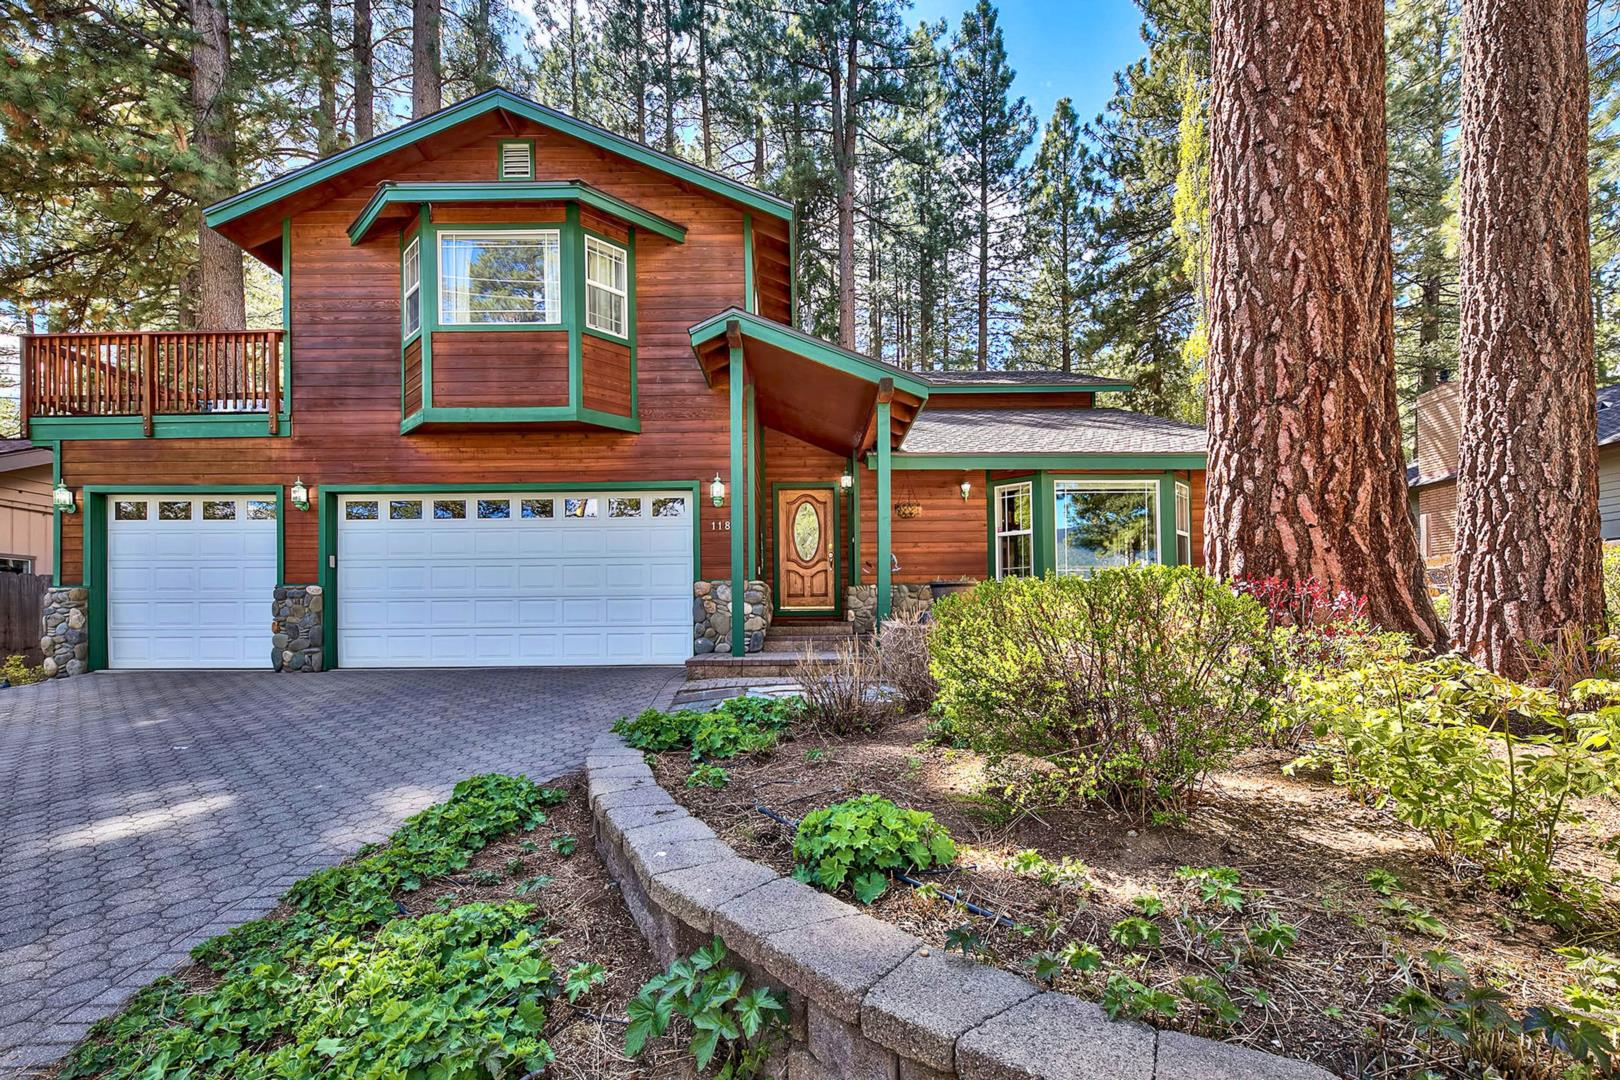 1180 Winnemucca Ave - Why you should love it